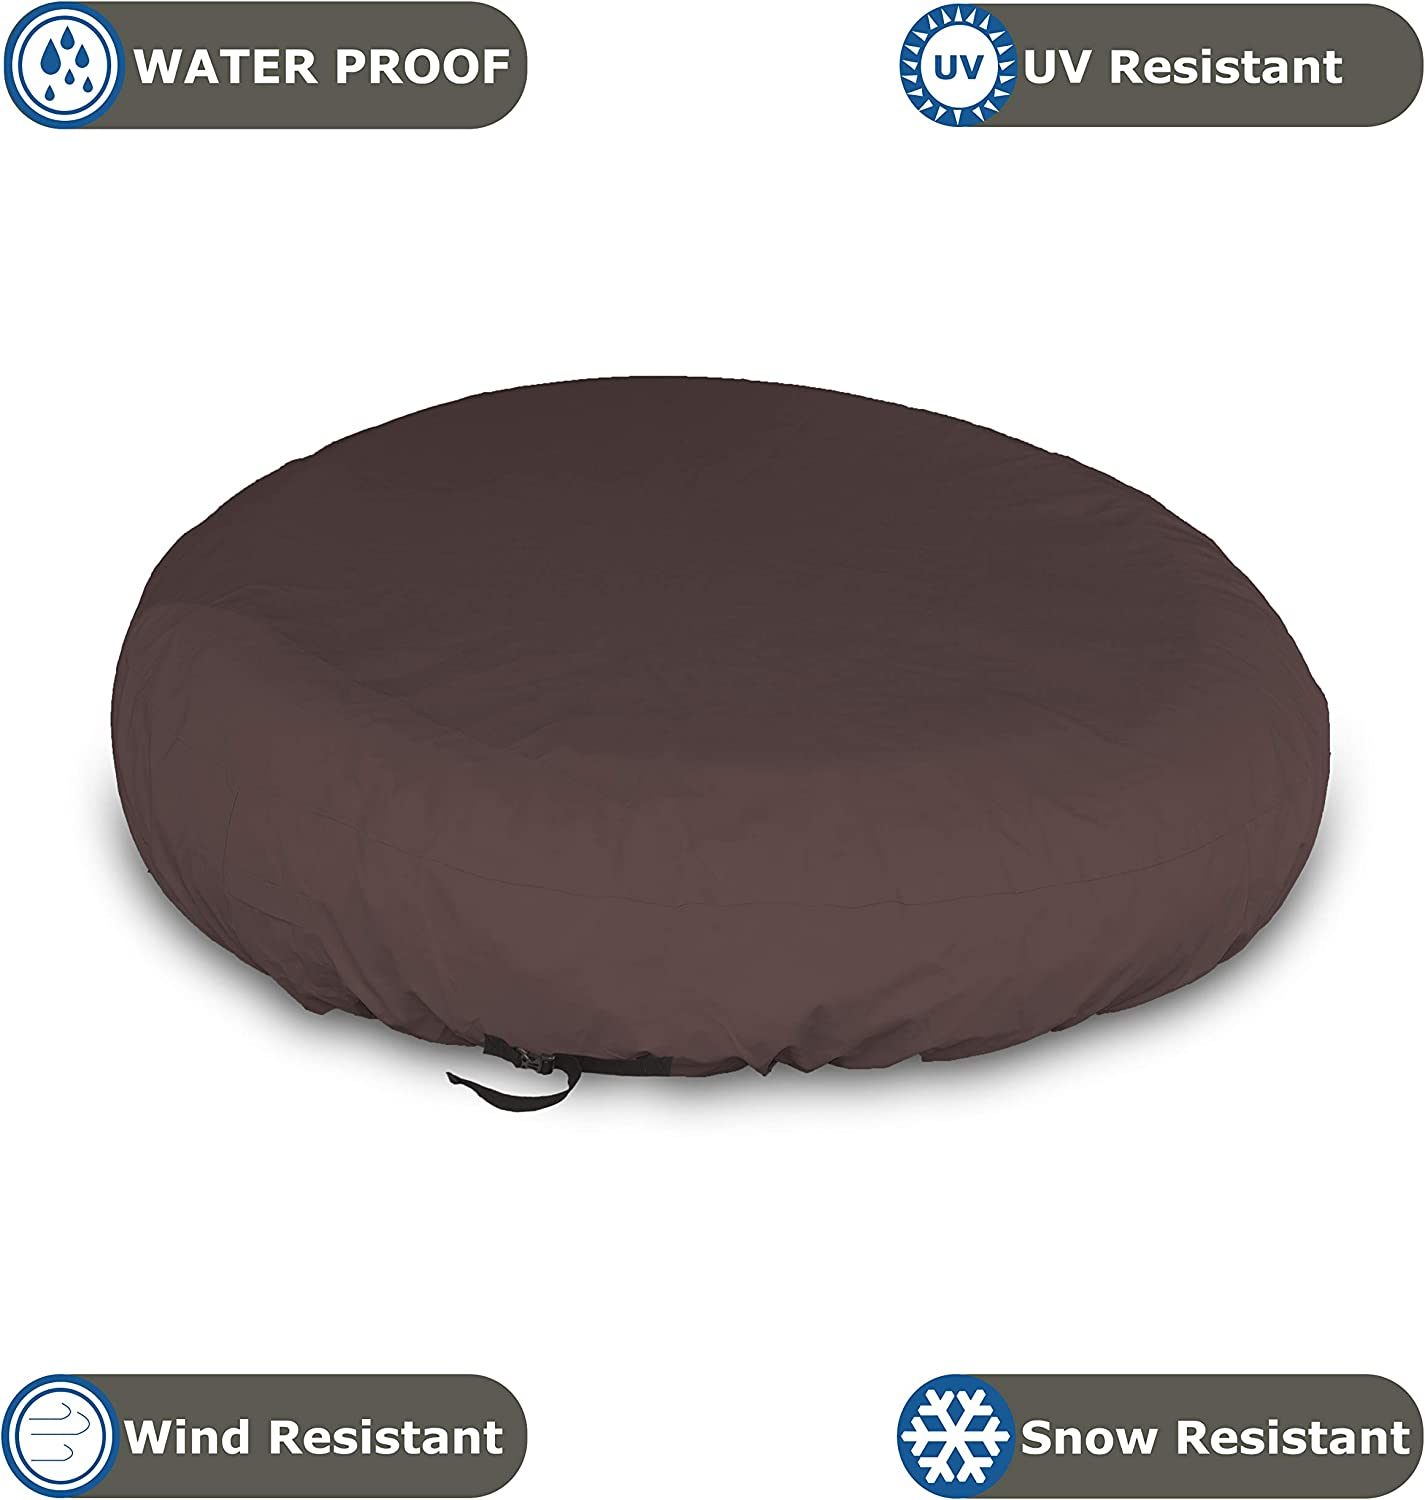 Beige 100/% UV /& Weather Resistant Patio Sofa Cover with Air Pockets and Drawstrap for Snug fit Outdoor Daybed Cover 12 Oz Waterproof